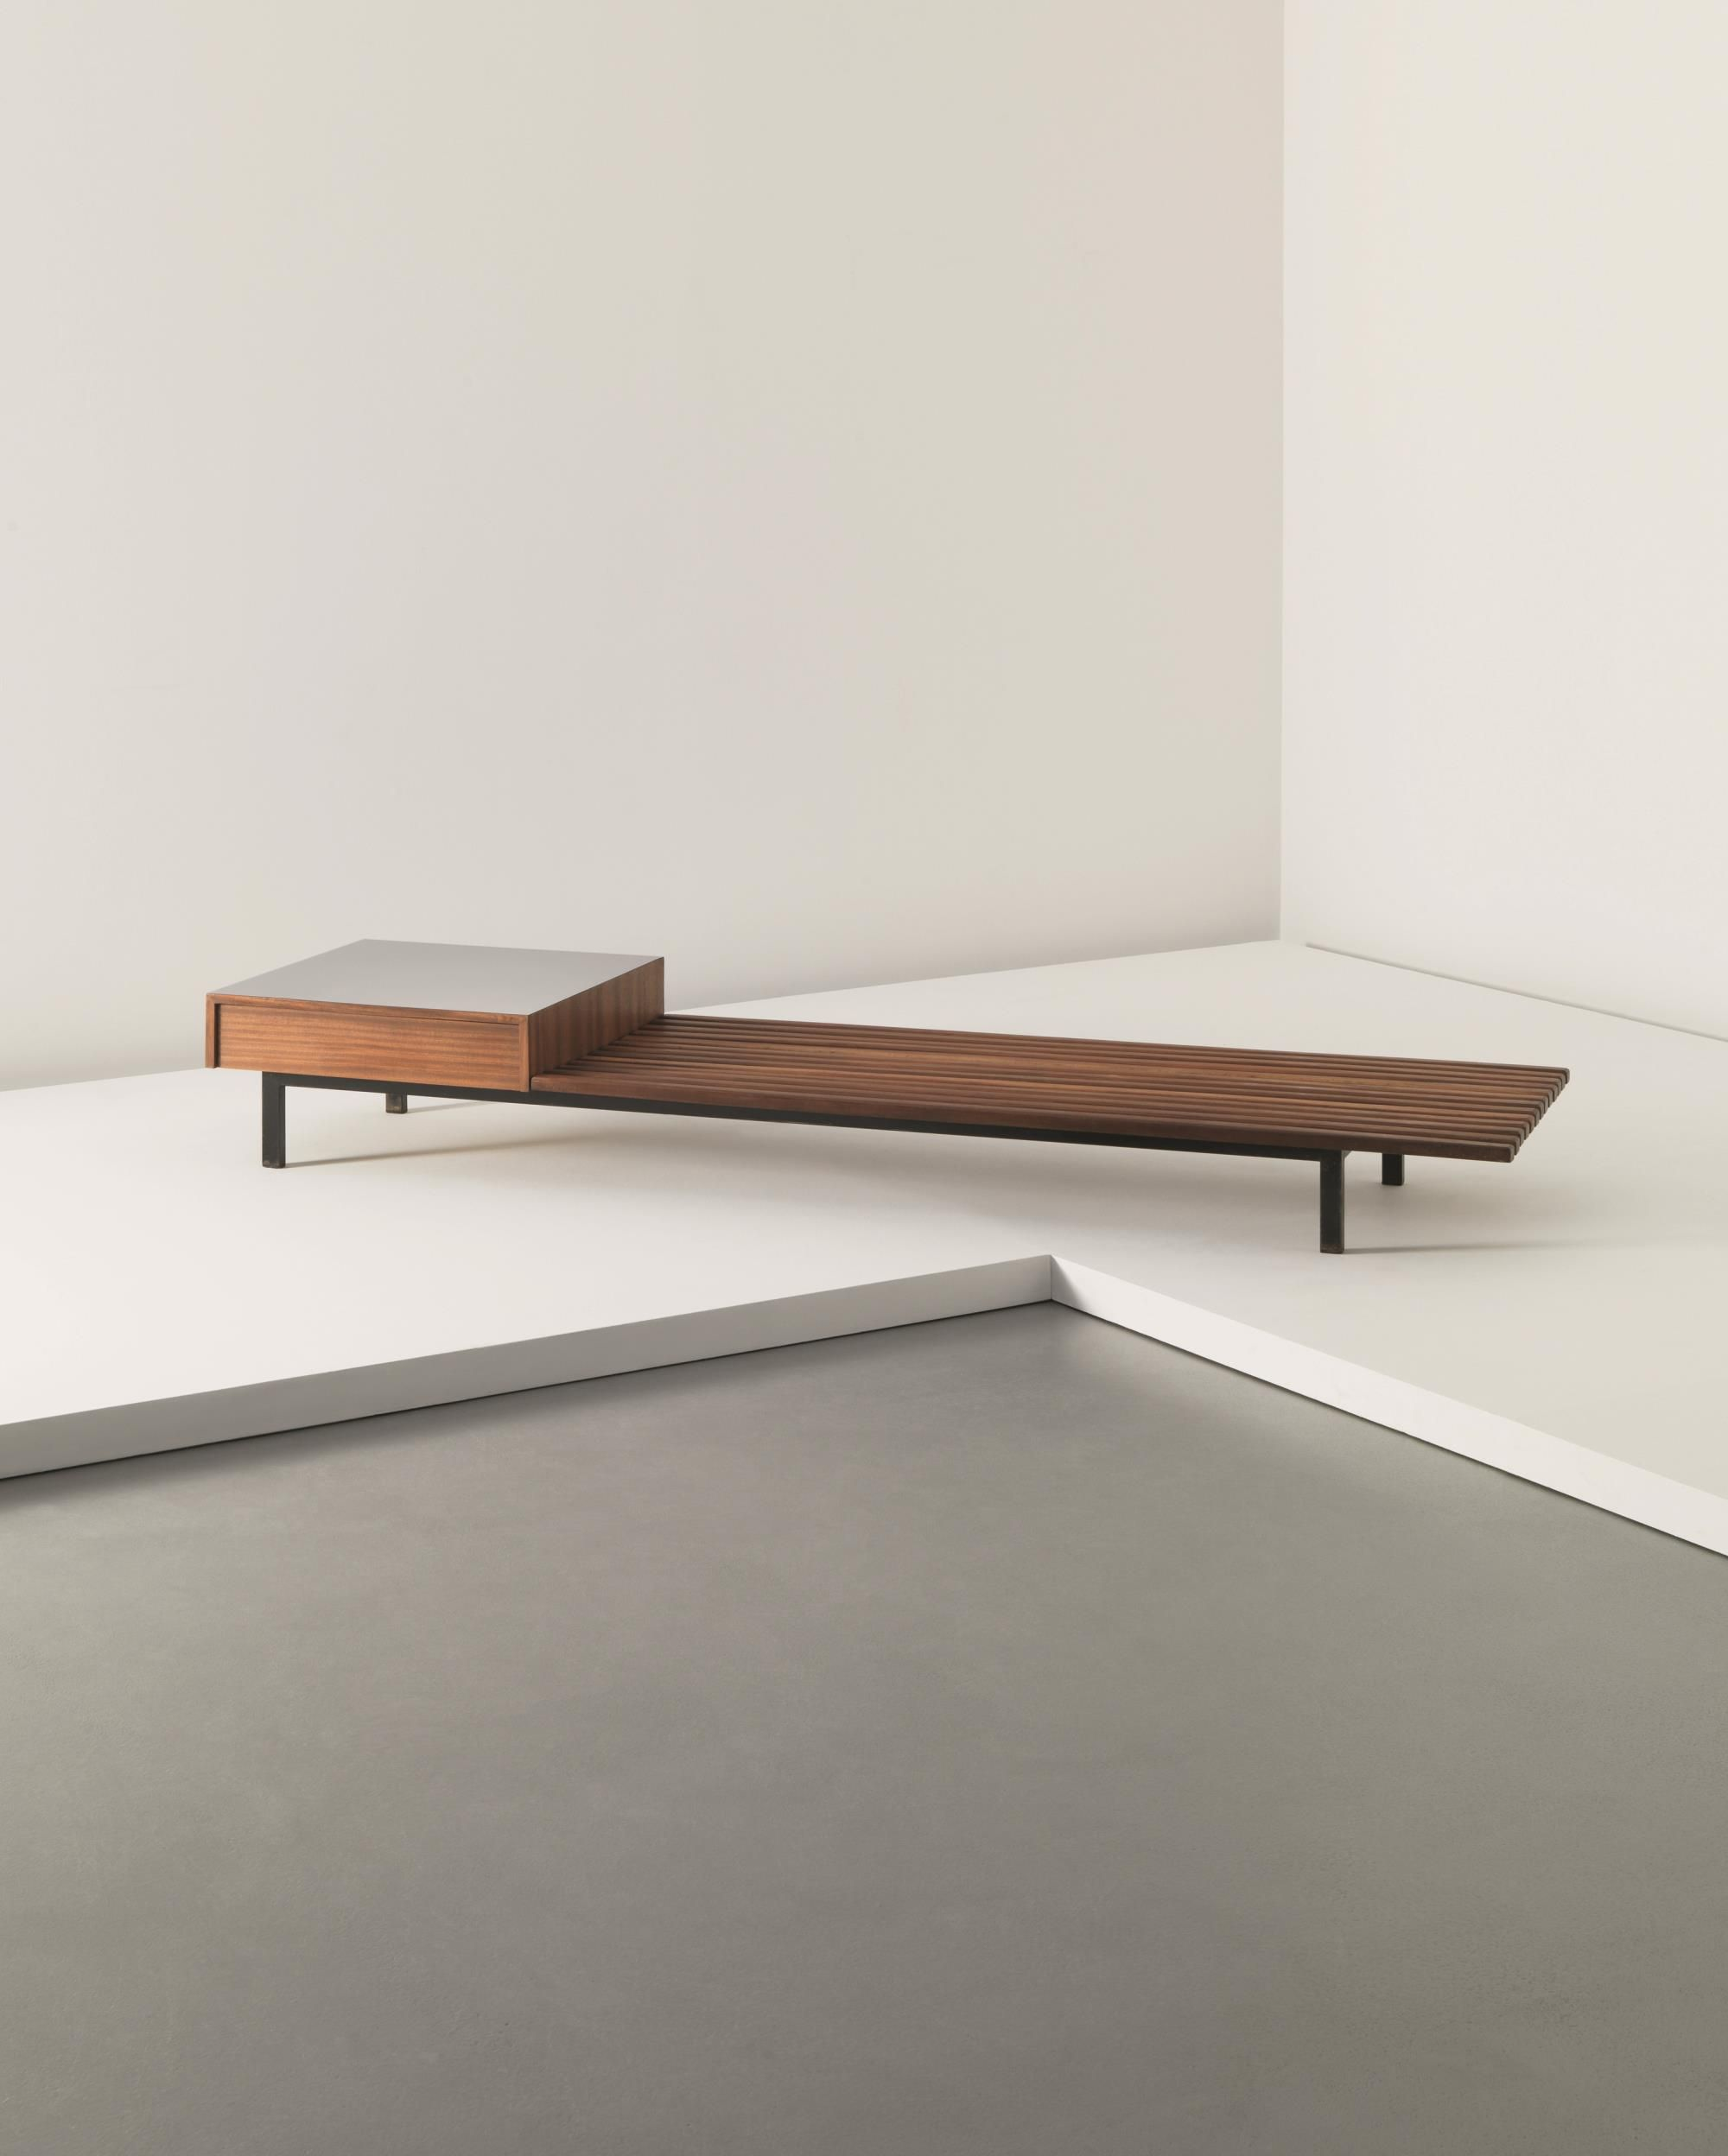 charlotte perriand bench with drawer from cit cansado mauritania circa 1958 oak plastic. Black Bedroom Furniture Sets. Home Design Ideas